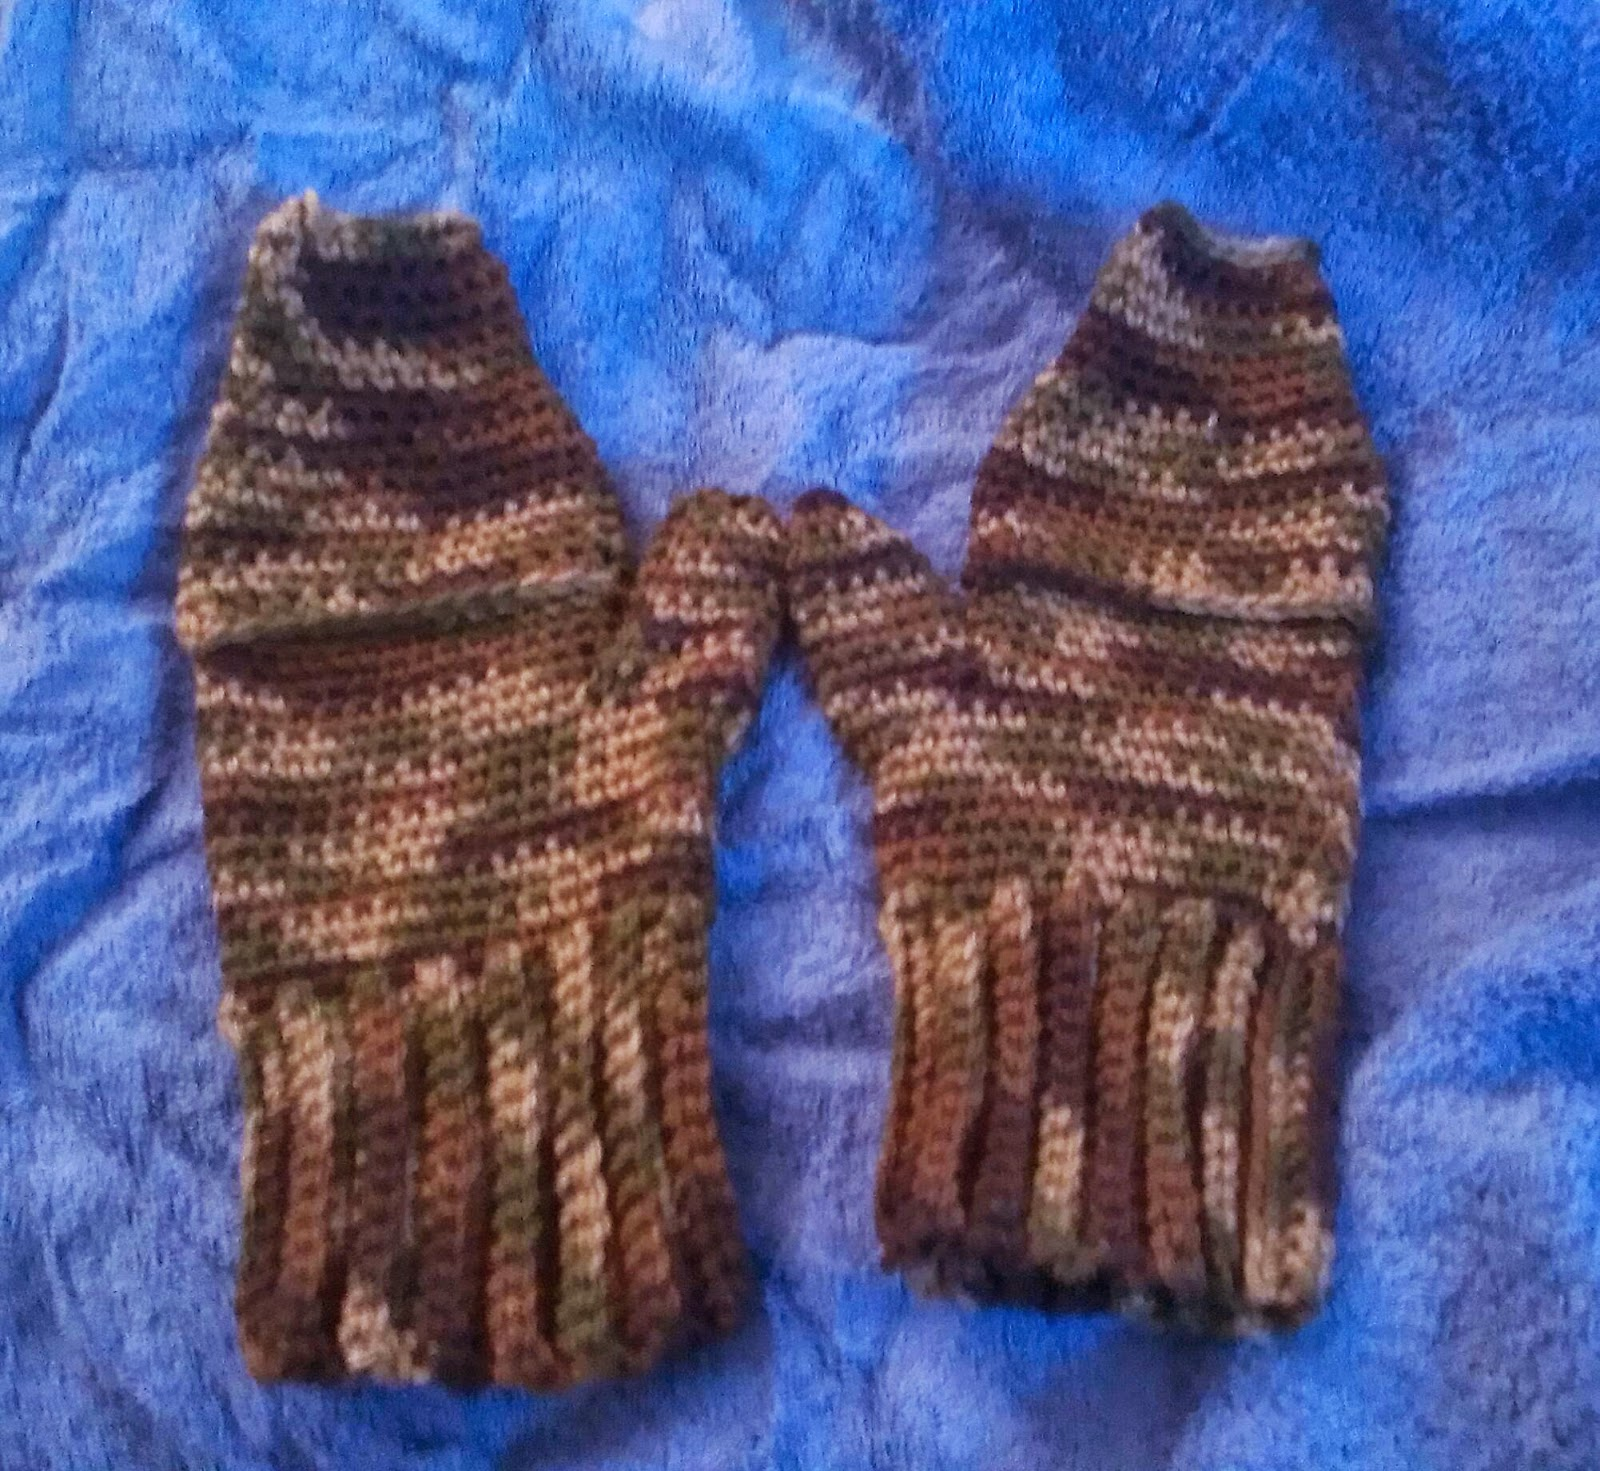 Knitting Pattern For Mittens With Flaps : Crochet Creations by Sara: Mittens with flaps..? *Pattern*